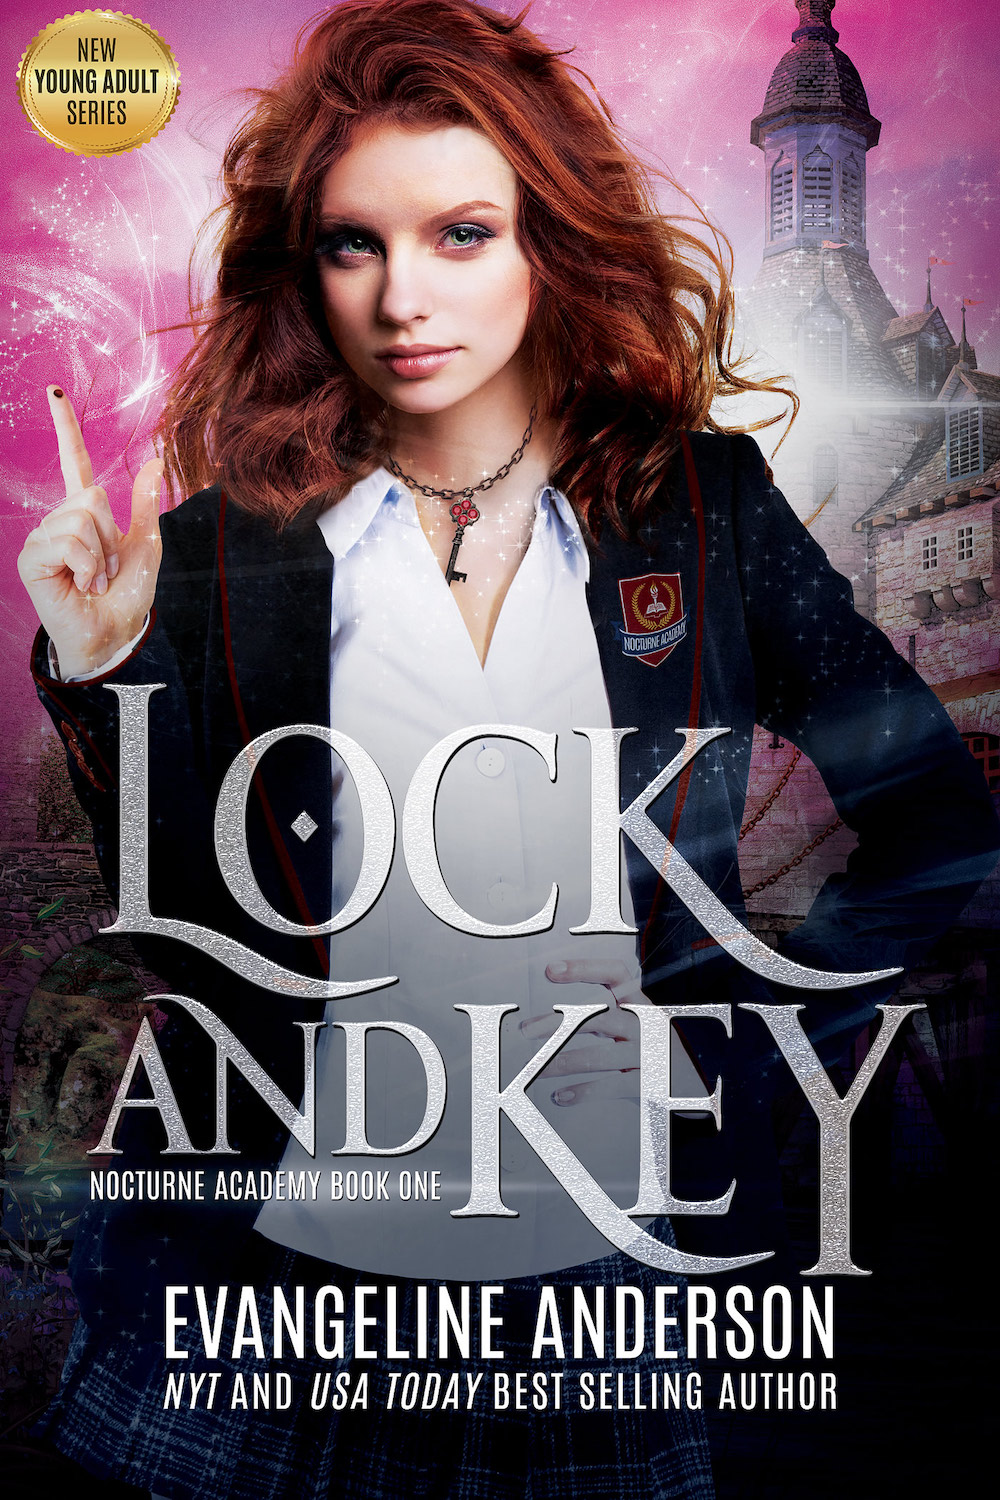 Lock and Key (Nocturne Academy #1) by Evangeline Anderson